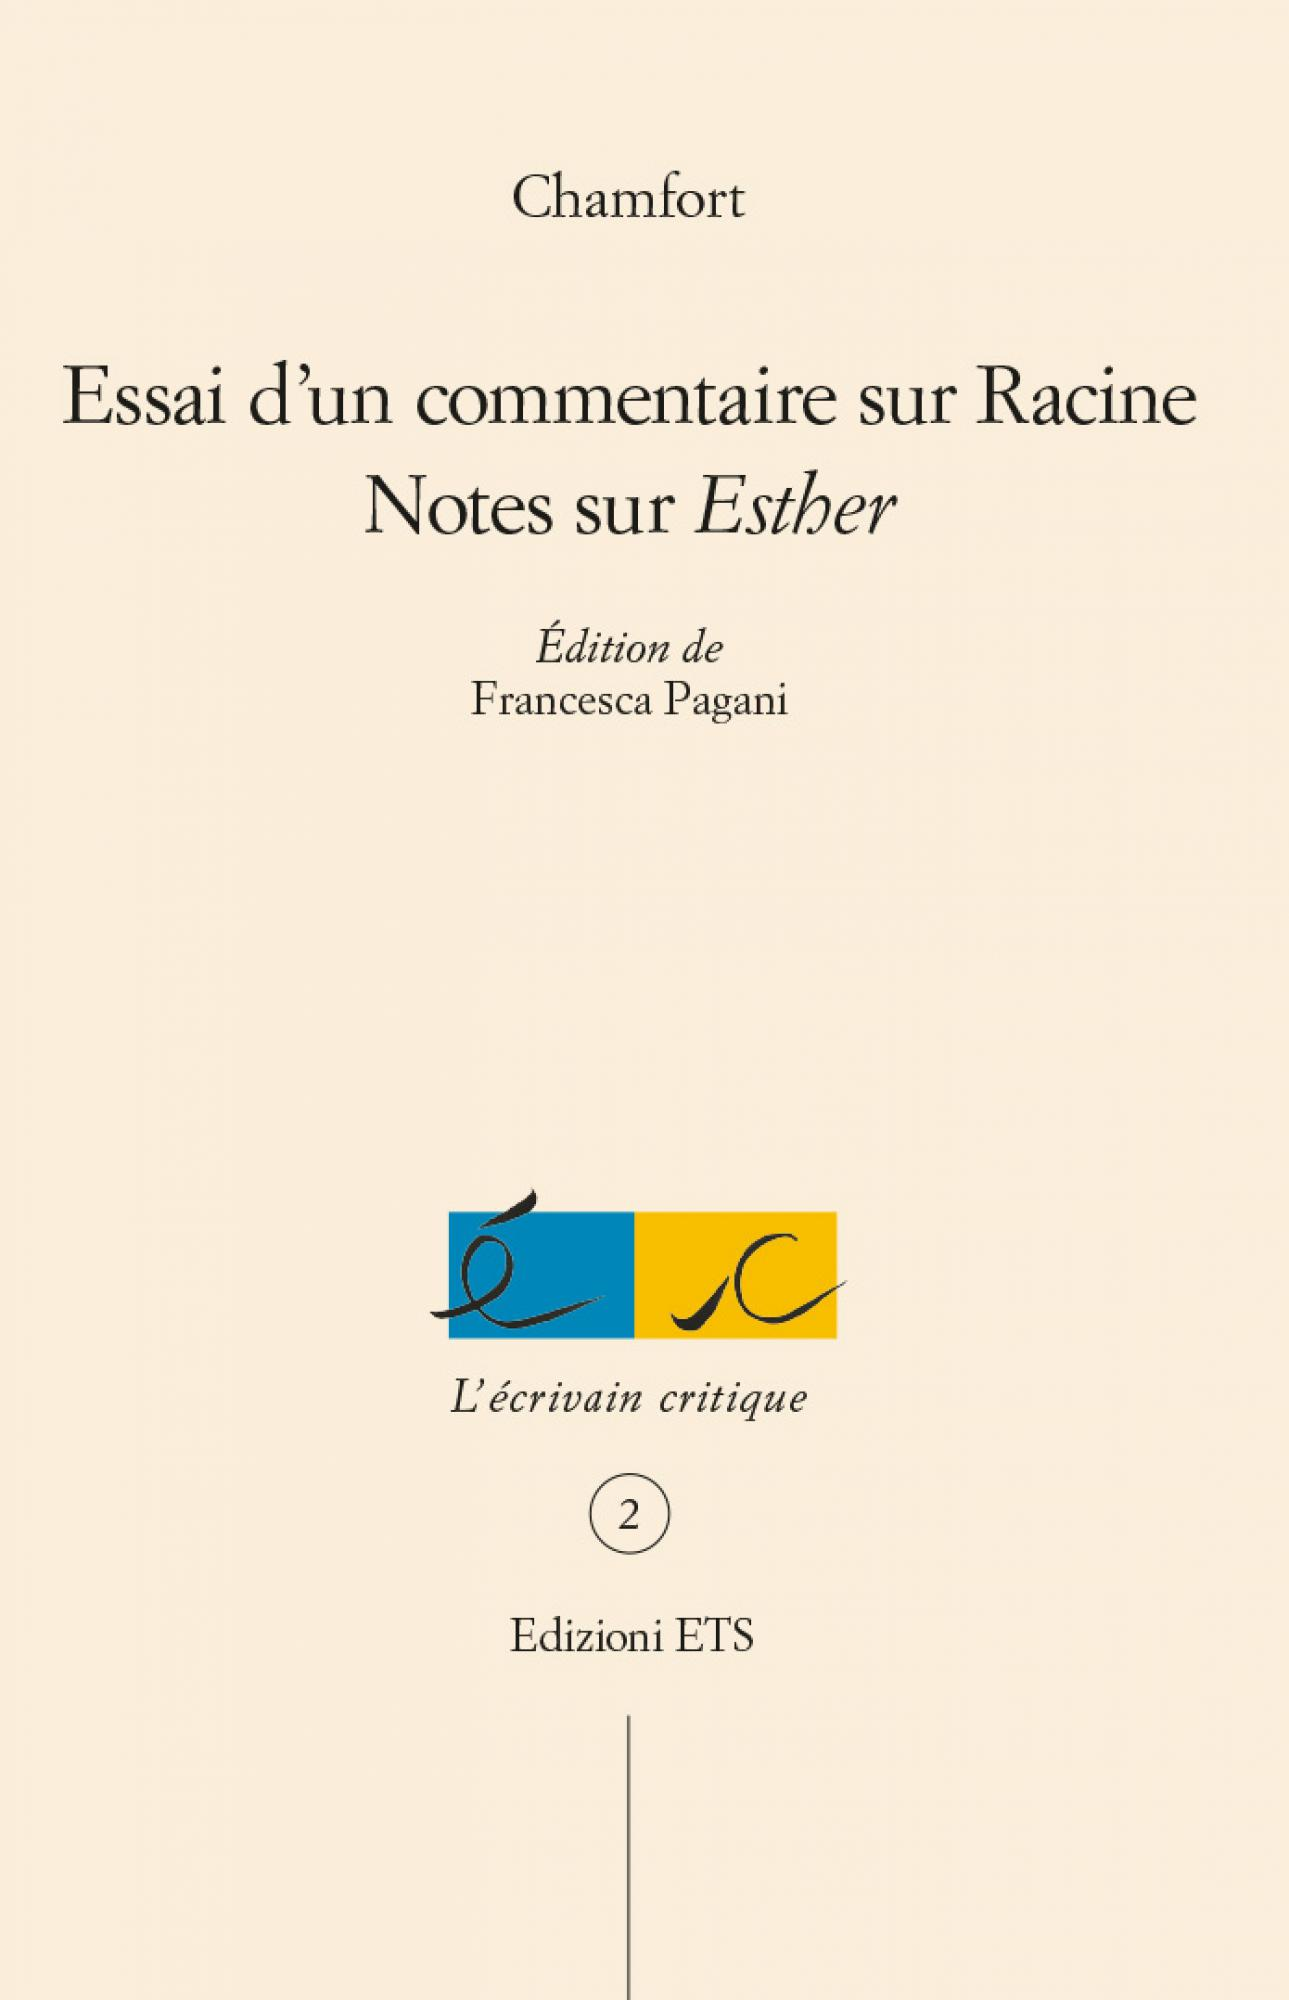 Essai d'un commentaire sur Racine.